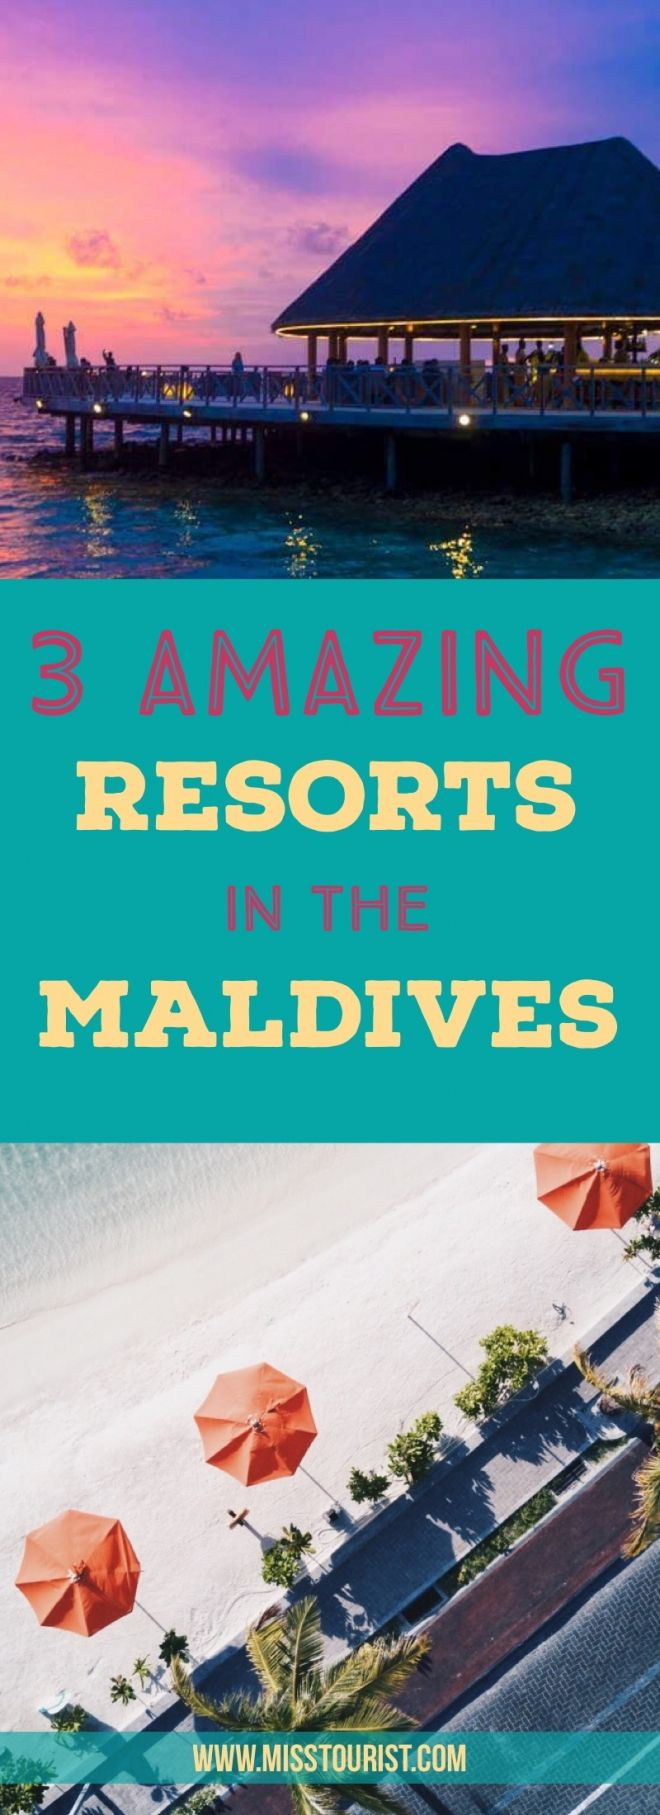 During my 2 week stay in the Maldives, I had a chance to stay in three resorts. Each of them was amazing, but I noticed all three were very different from each other. Every one of them had a different vibe, crowd, price range, style, service and many more details. Today I want to present them to you and help you choose the best one!  Honeymoon, Resort, Island, Pictures, Things To Do, Water Villa, Beaches, Budget, Travel, All Inclusive, Wedding, Vacation, Diving, Bungalow, Food, Hotel…